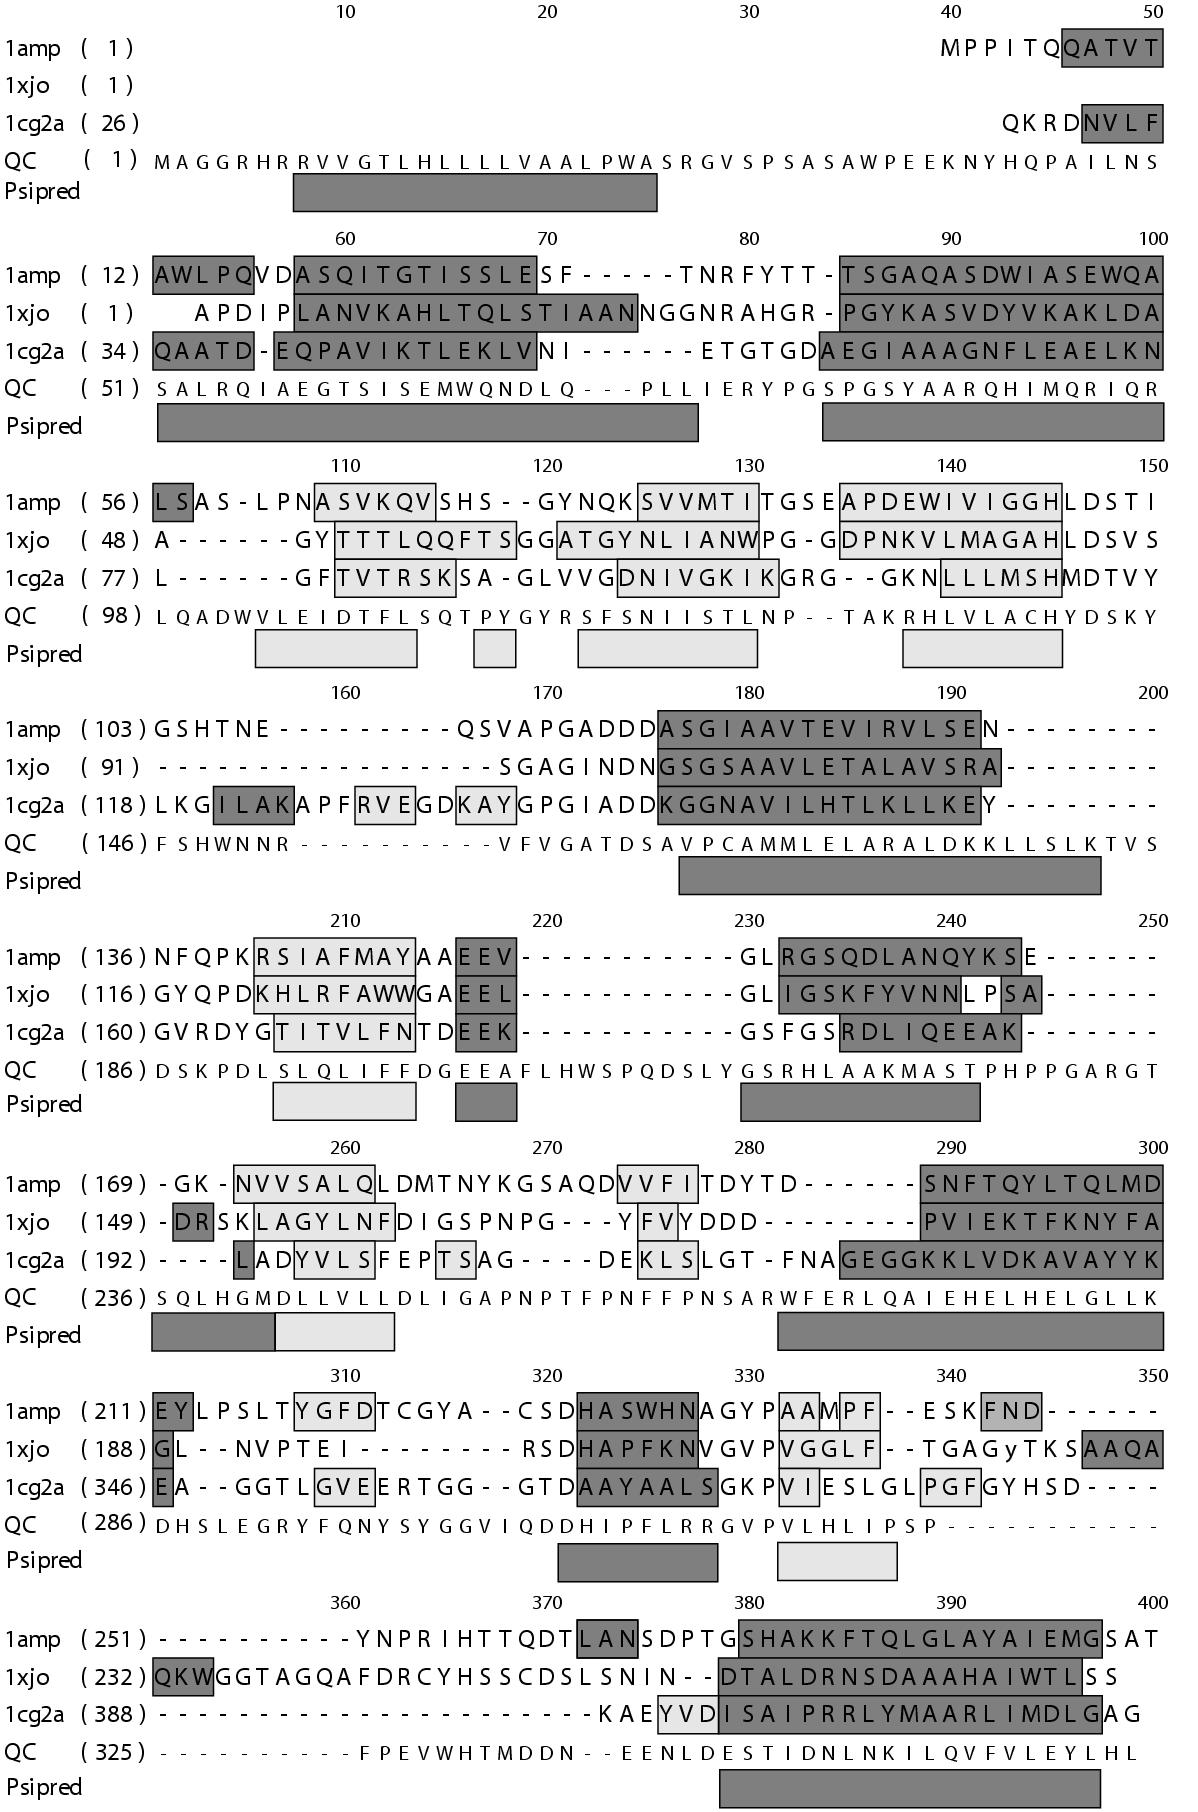 http://static-content.springer.com/image/art%3A10.1186%2F1741-7007-2-2/MediaObjects/12915_2003_Article_4_Fig2_HTML.jpg